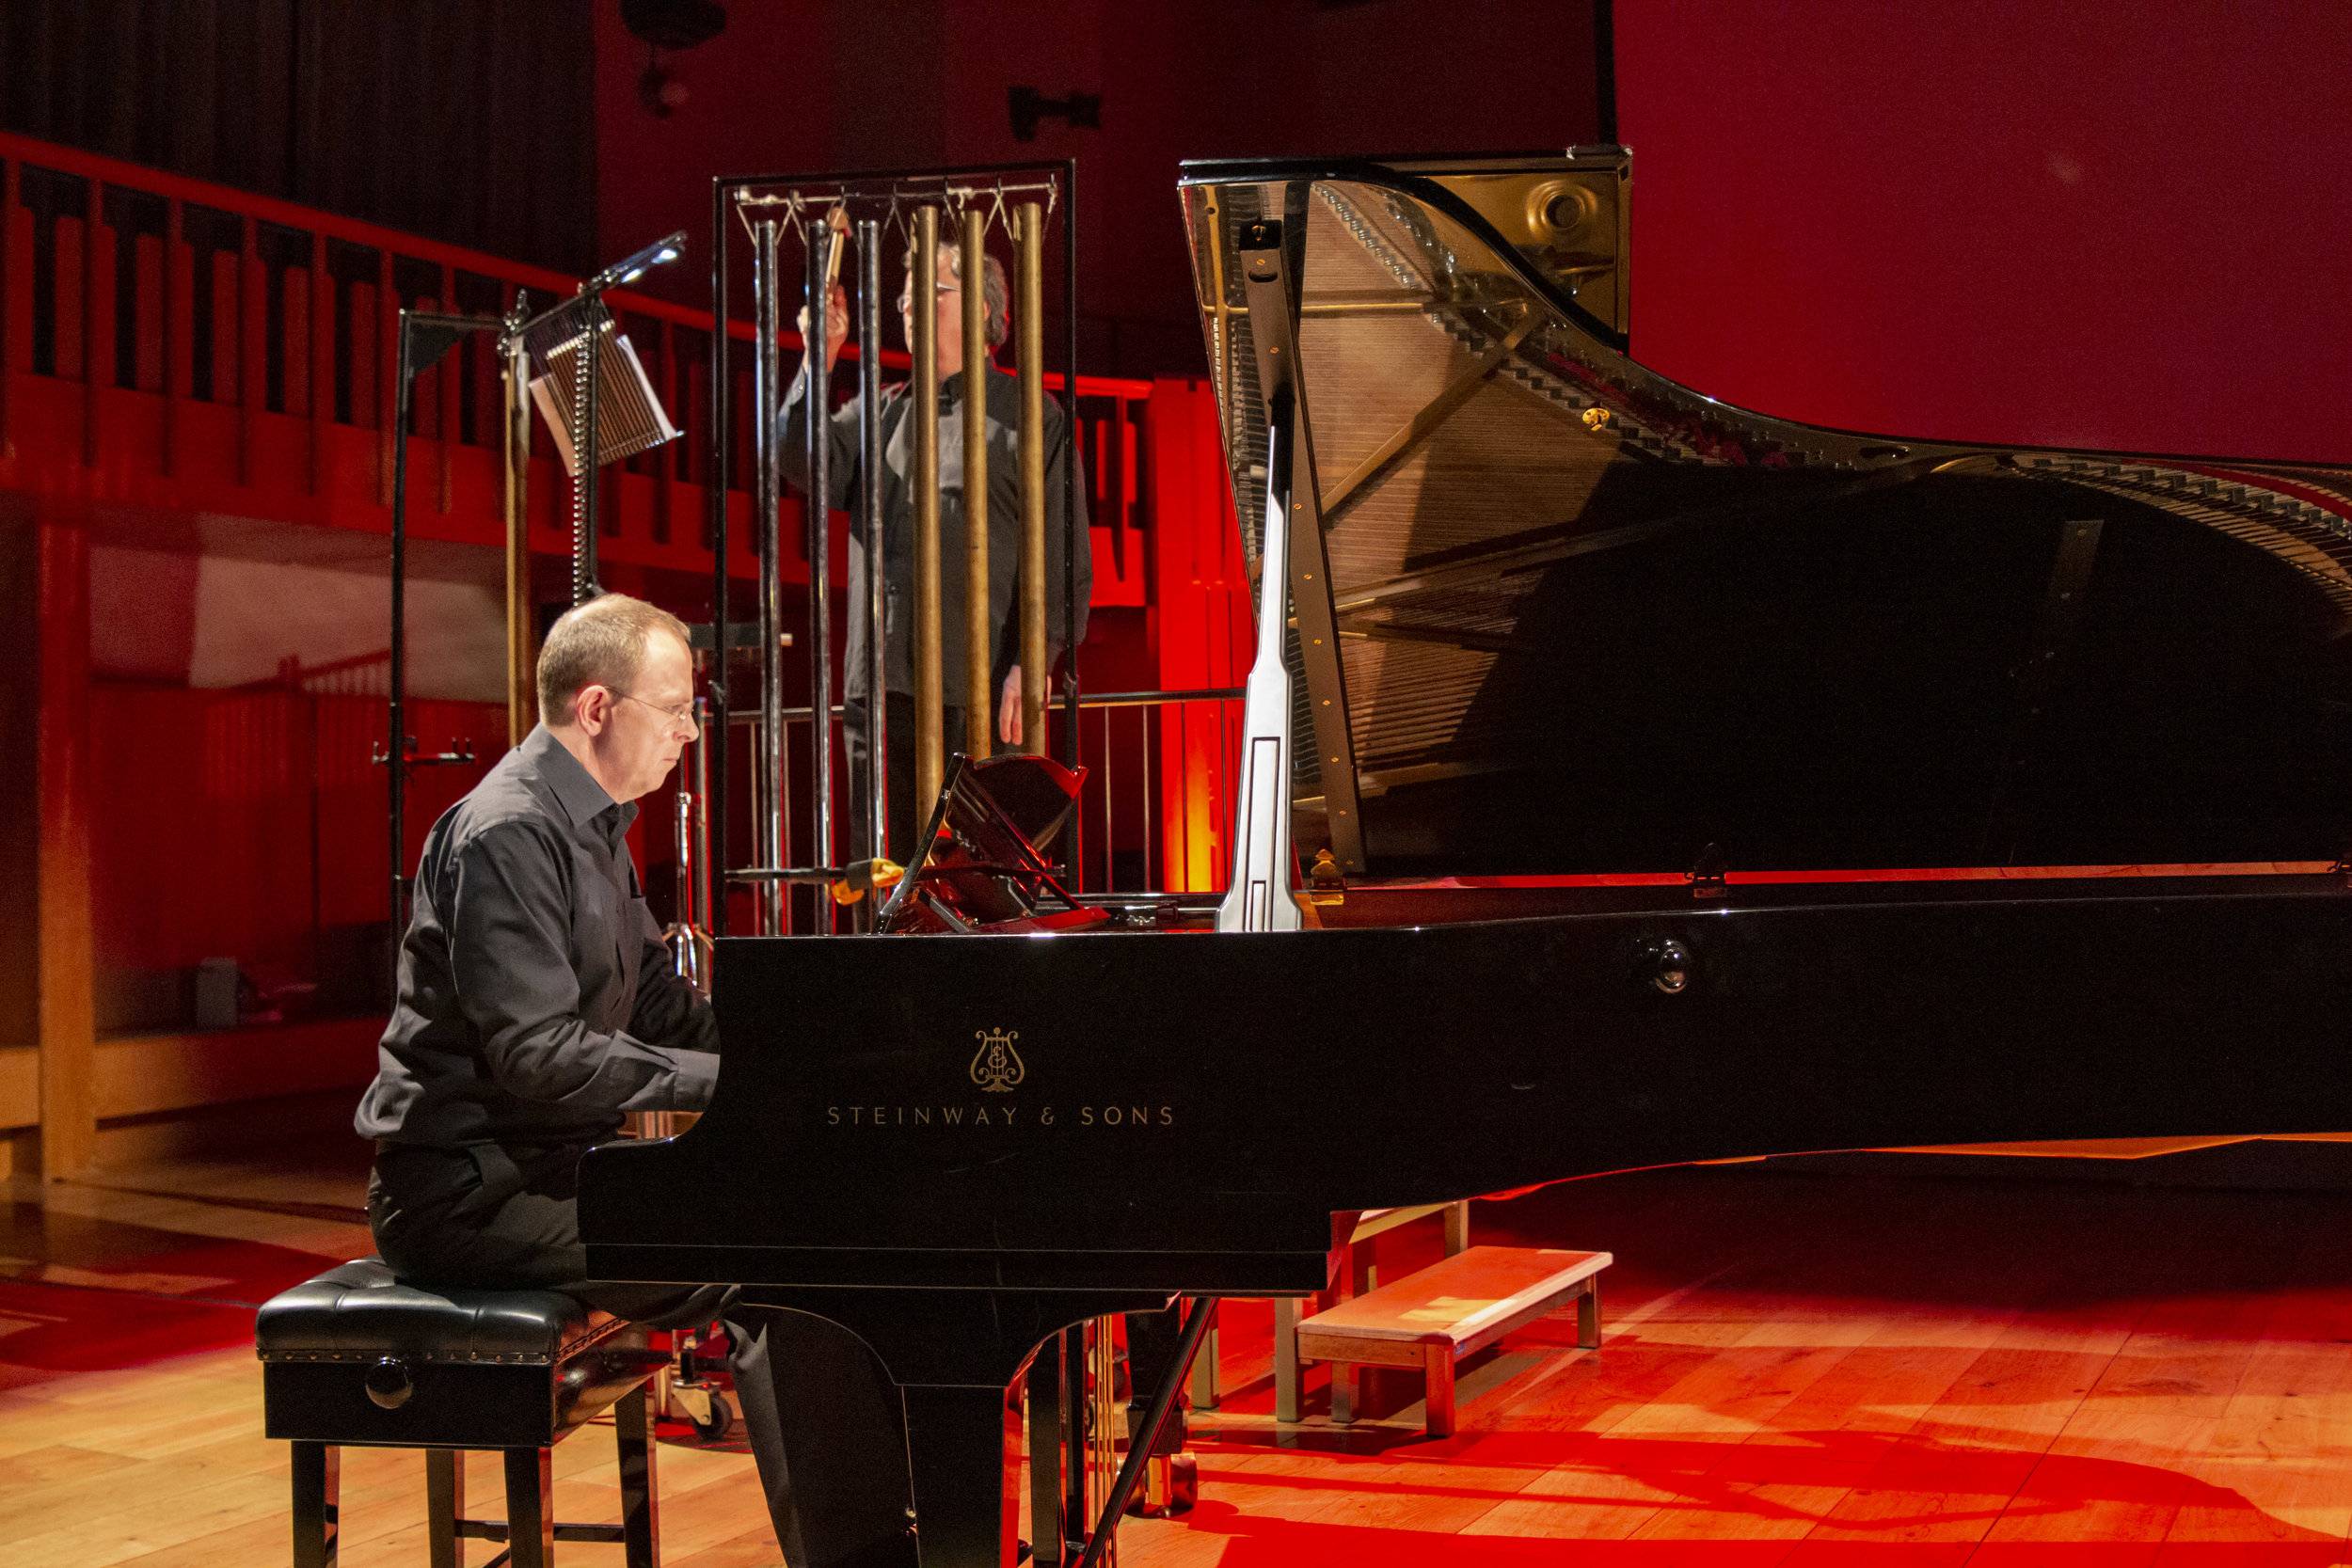 Ian Buckle (Piano) & Christopher Bradley (Chimes) perform  body split and hand remains untouched with the exception of itself.  29 January, 2019. Photo Credit: Opera North